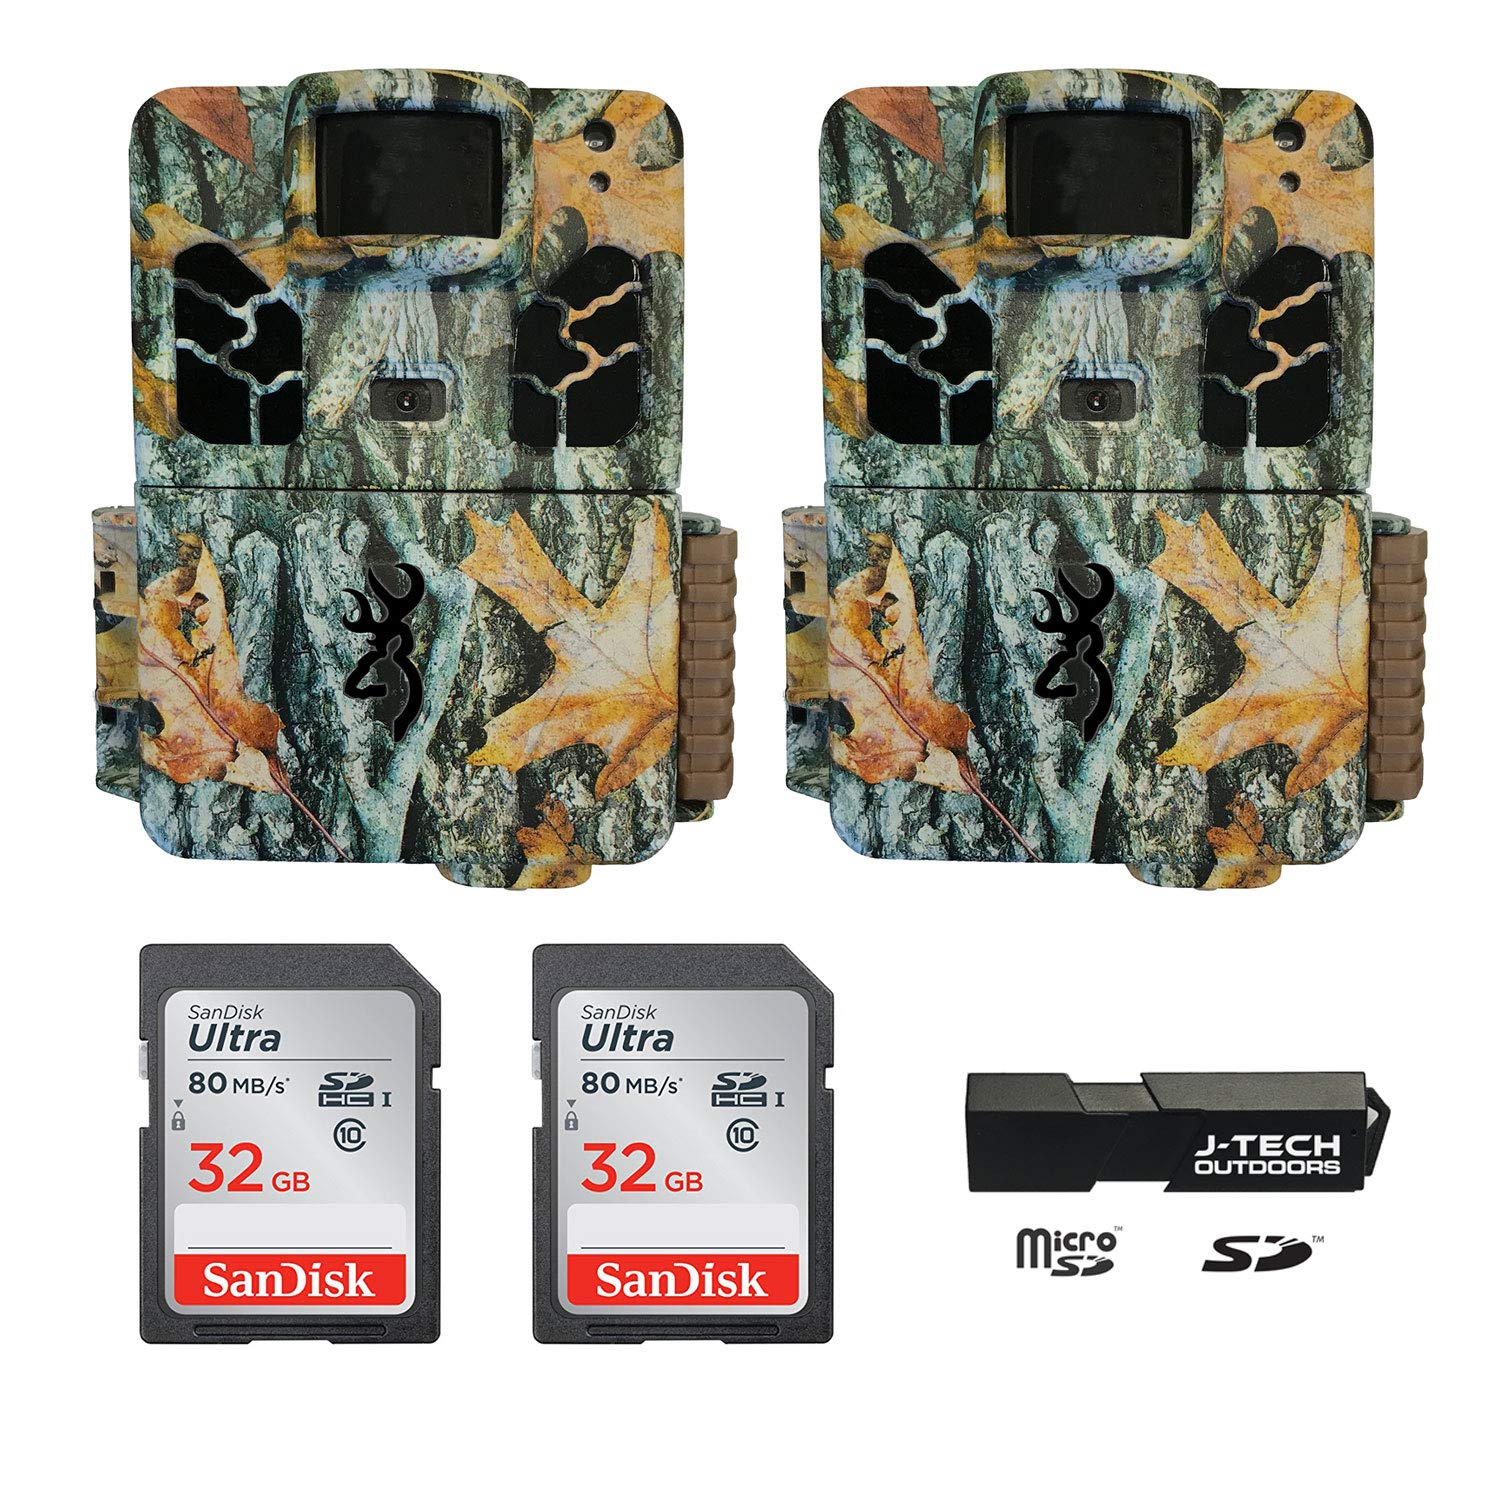 (2) Browning Dark OPS HD APEX (2019) Trail Game Cameras Bundle Includes 32GB Memory Cards and J-TECH Card Reader (18MP) | BTC6HDAPX by Browning Trail Cameras